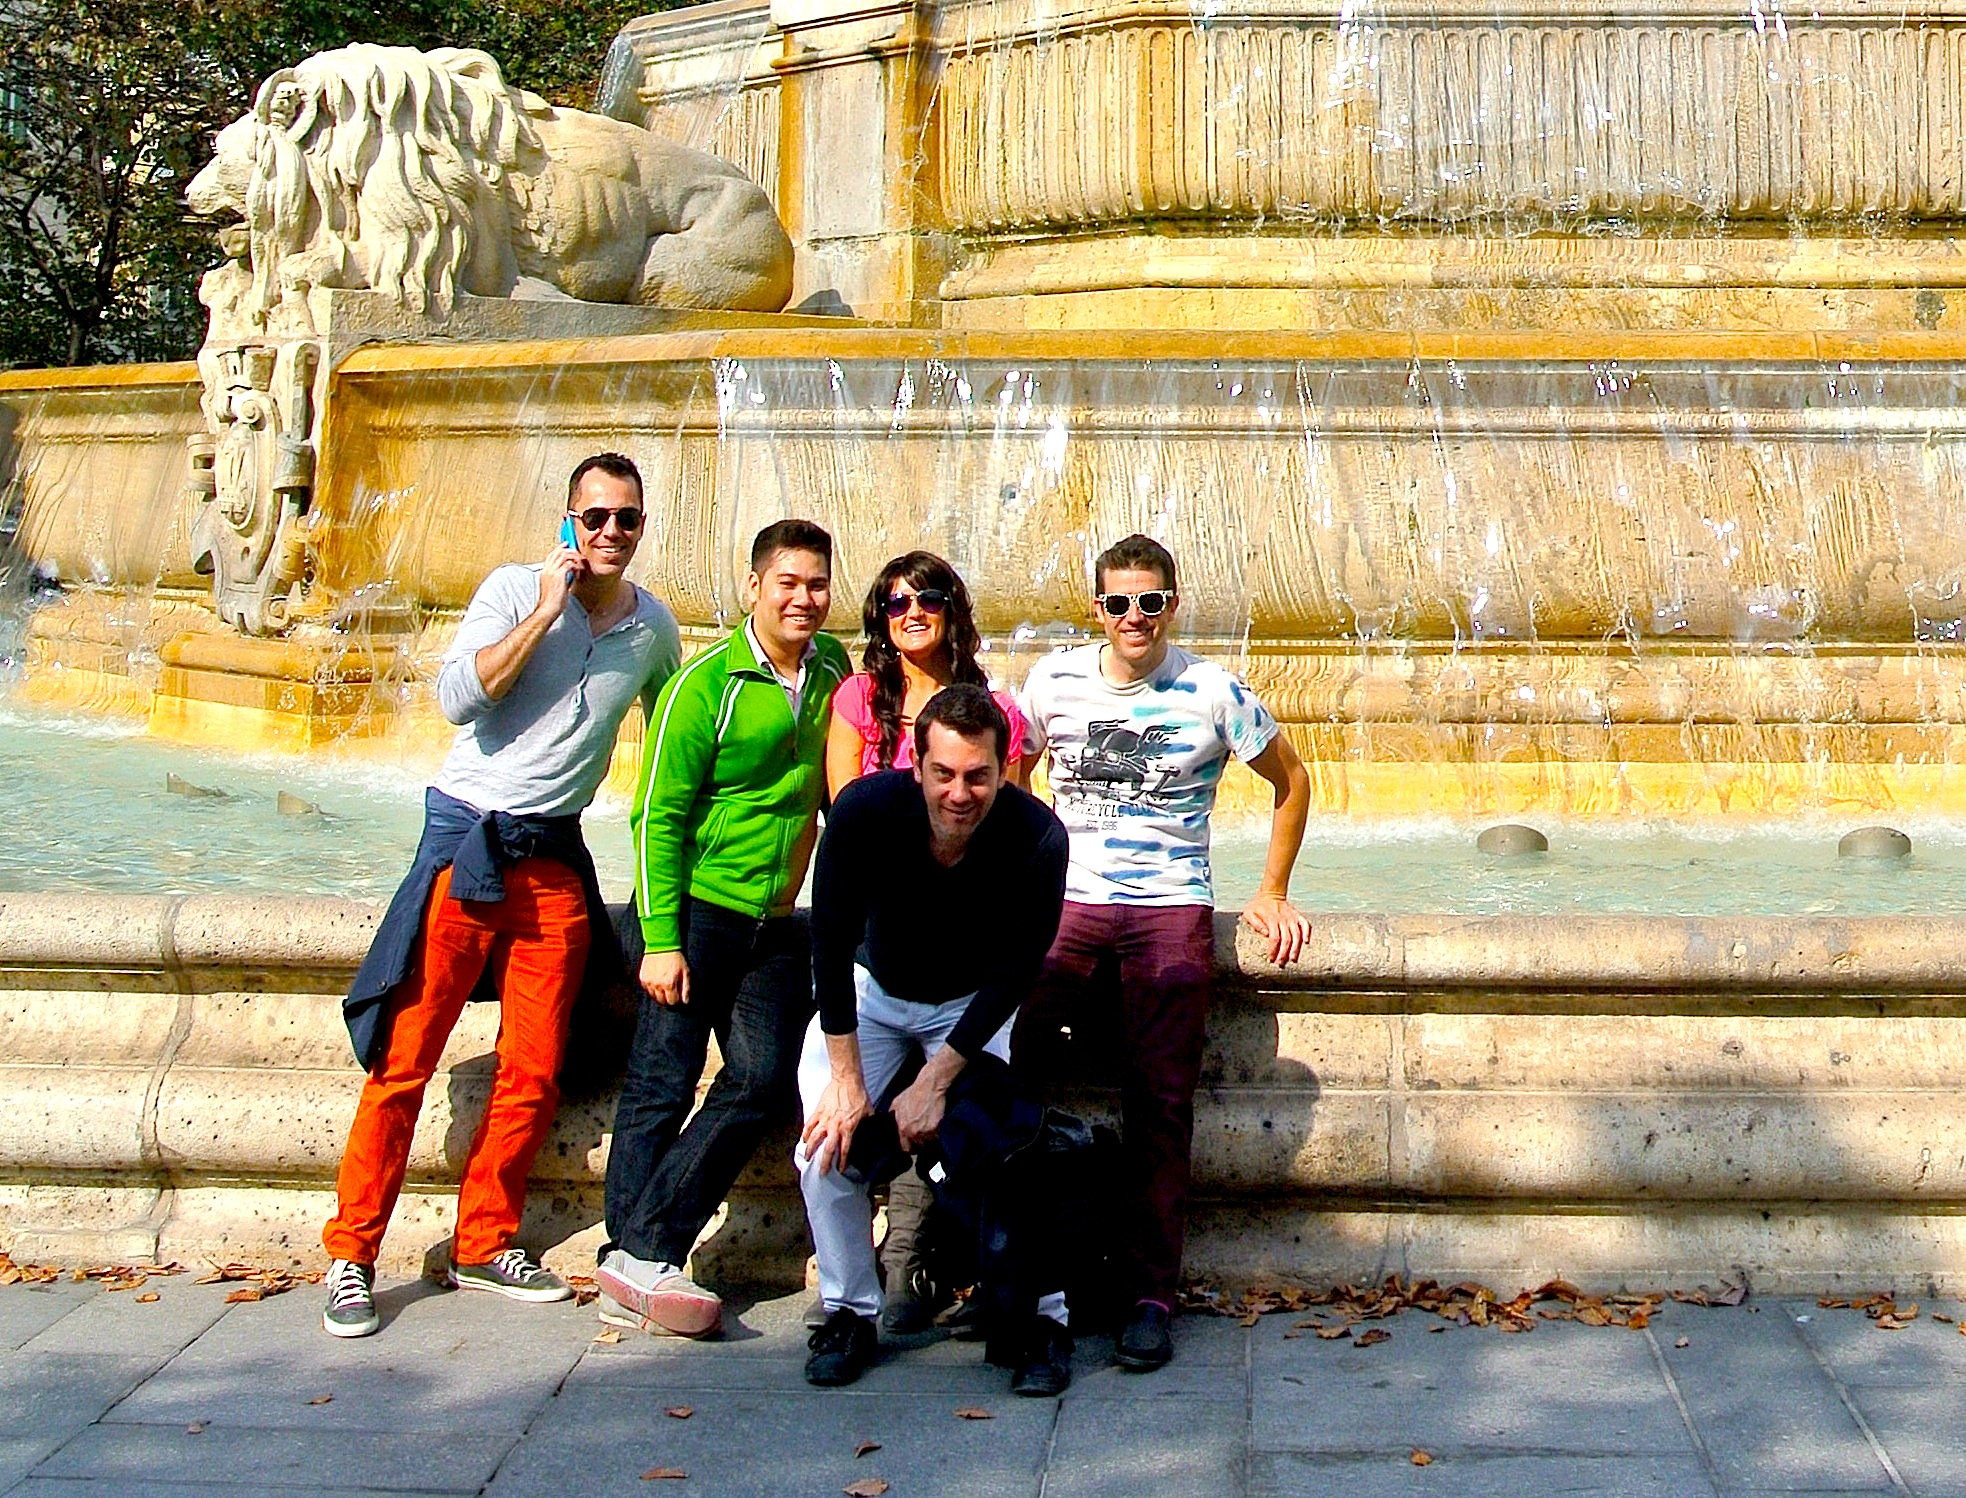 Wally, far right, and his friends at the Fontaine Saint-Sulpice